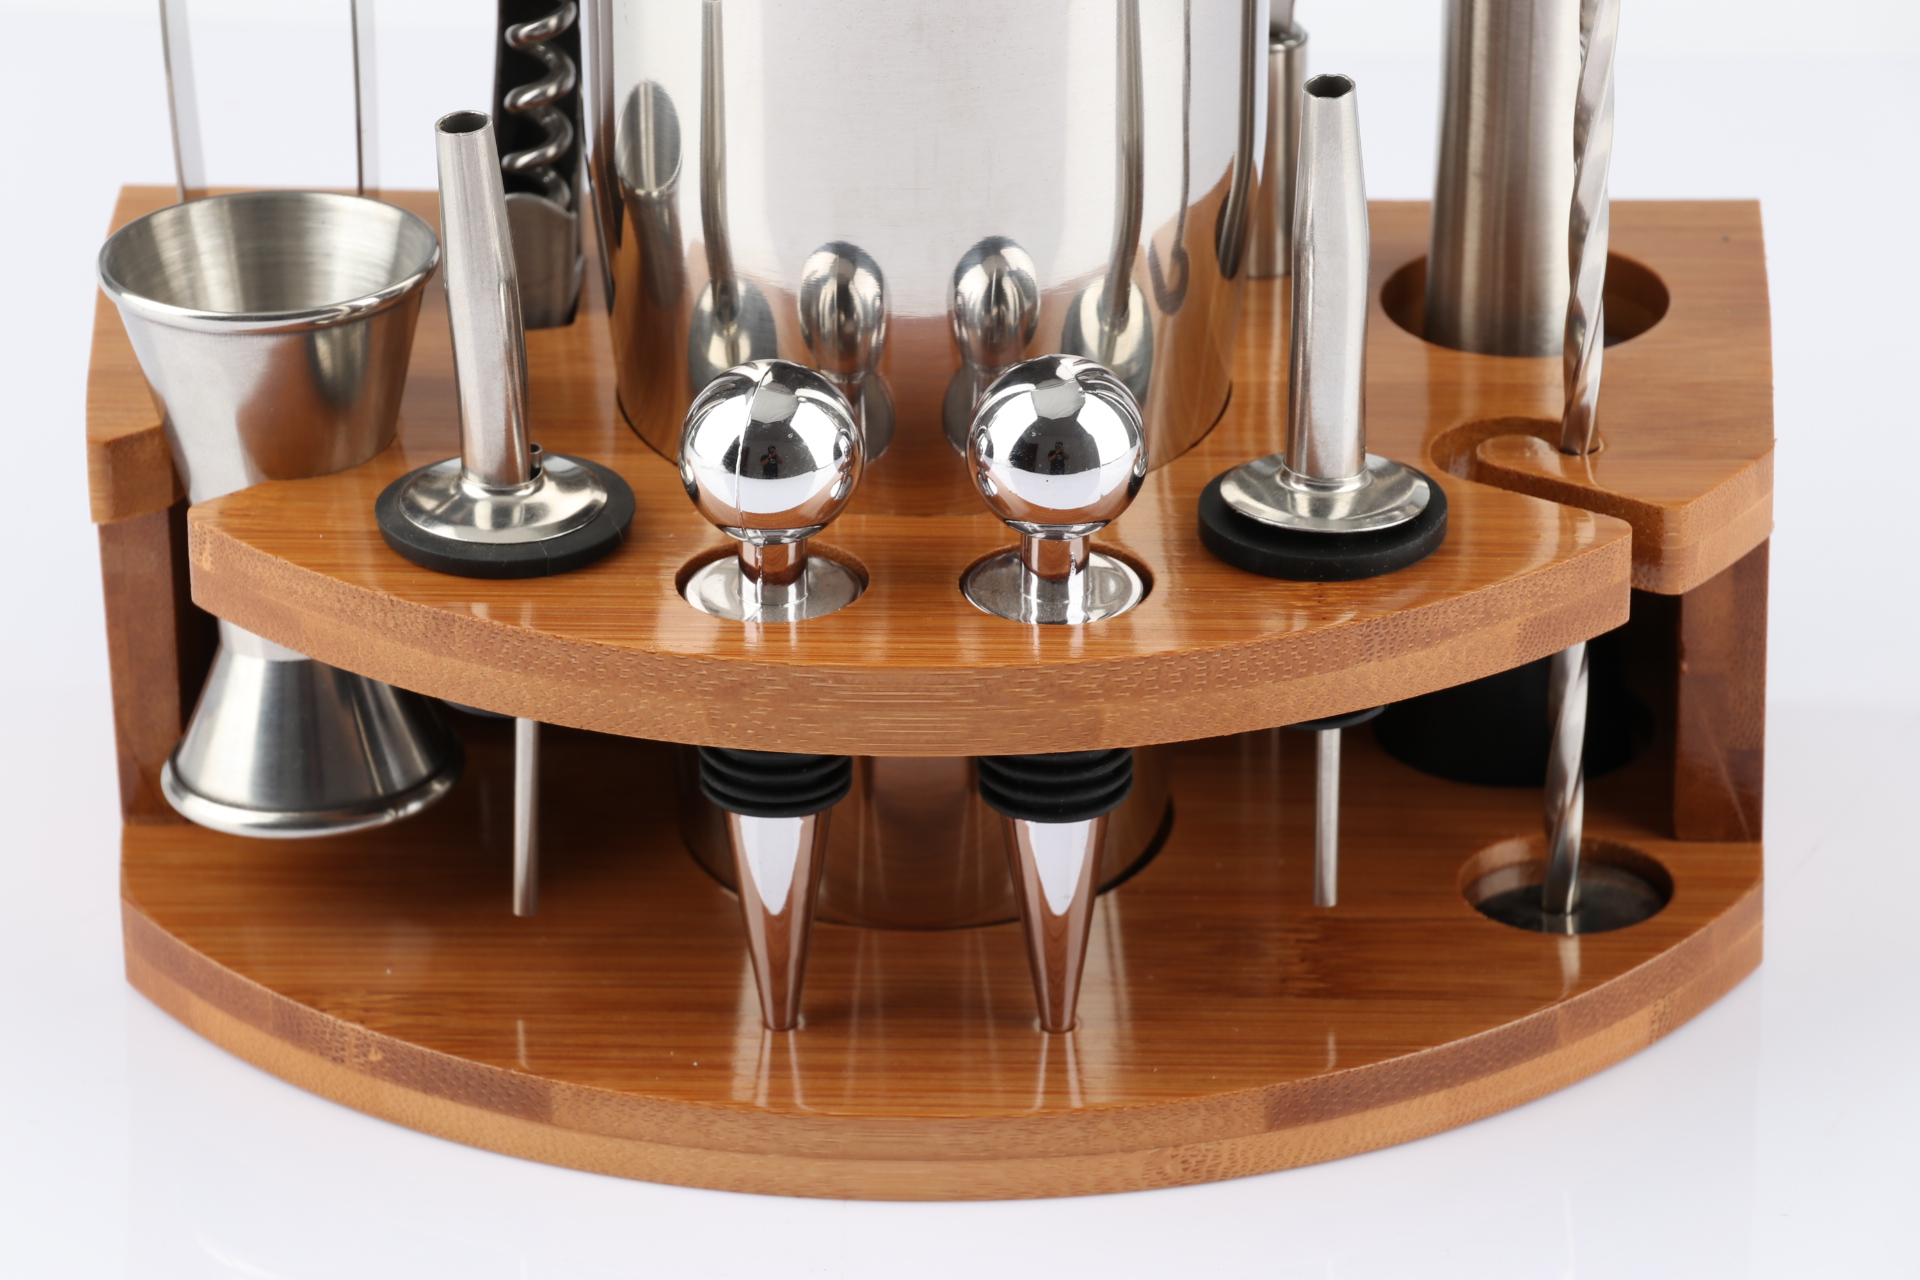 Premium Cocktail Shaker Bar Tools Set Brushed Stainless Steel Bartender Kit with All Bar Accessories